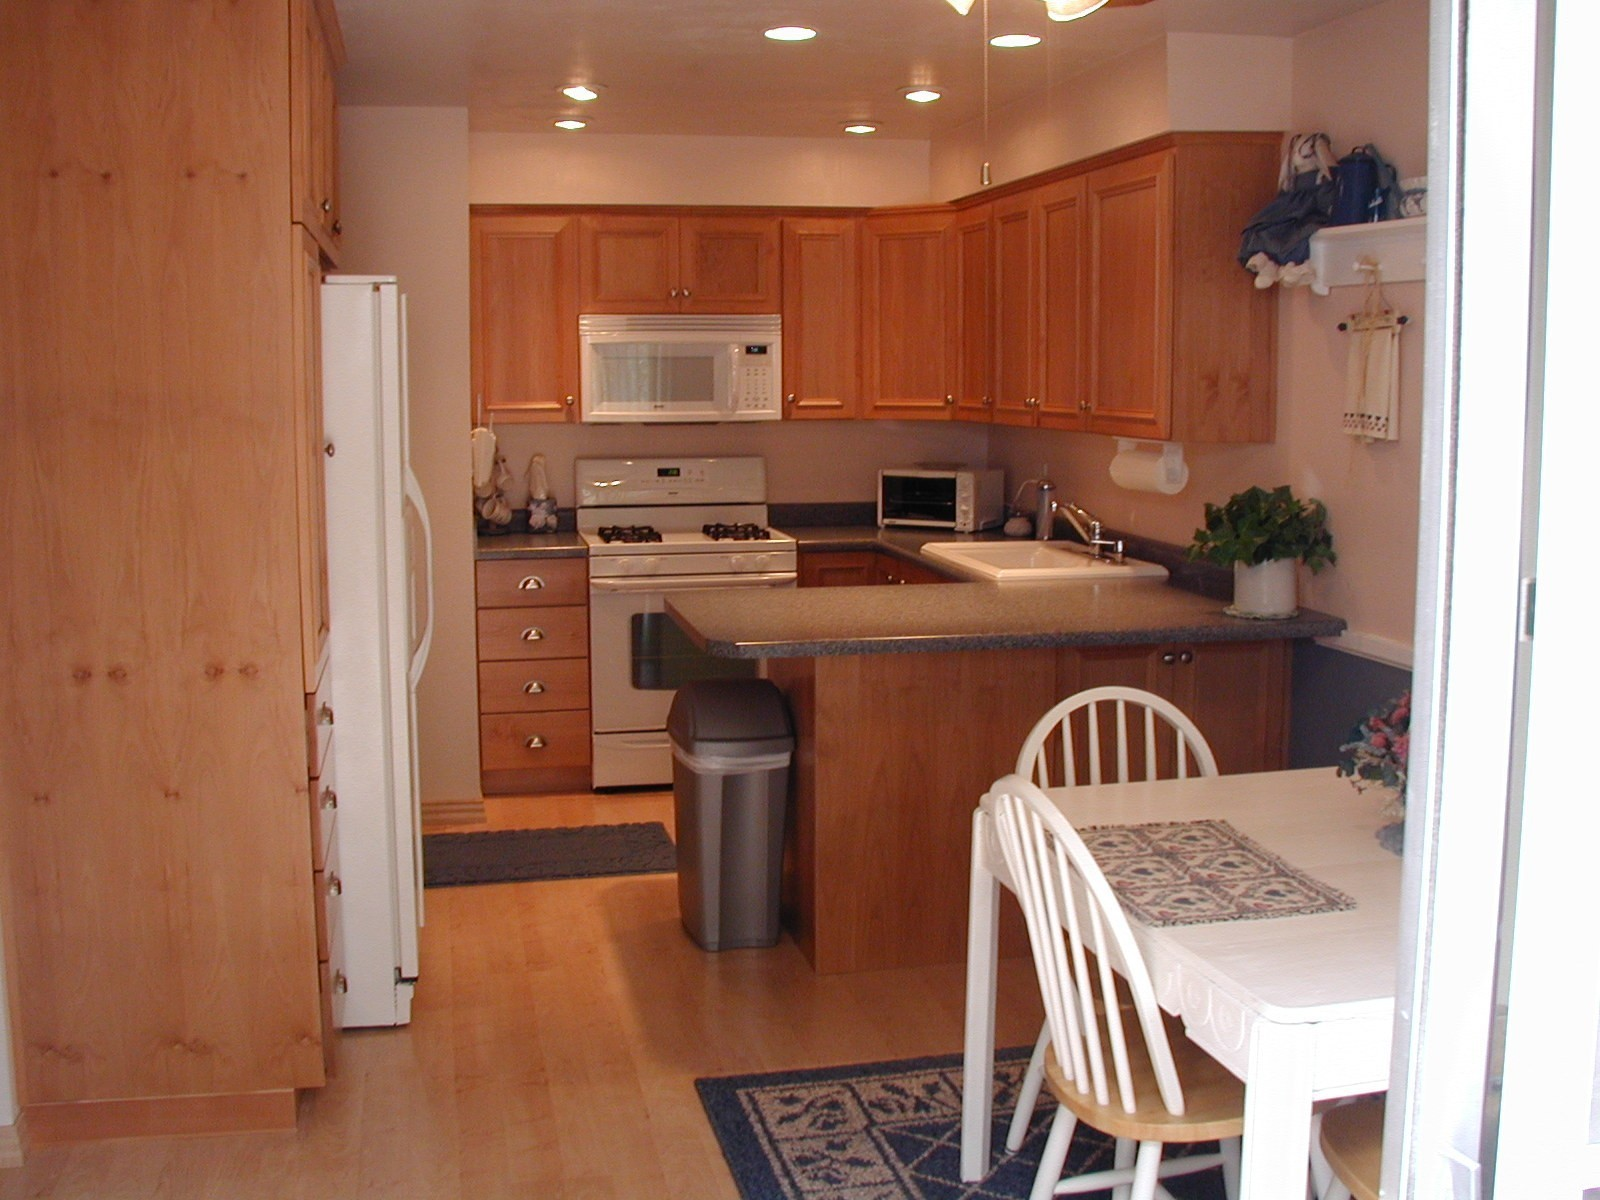 lighting kitchen no island kitchen lighting Lighting in kitchen with no island